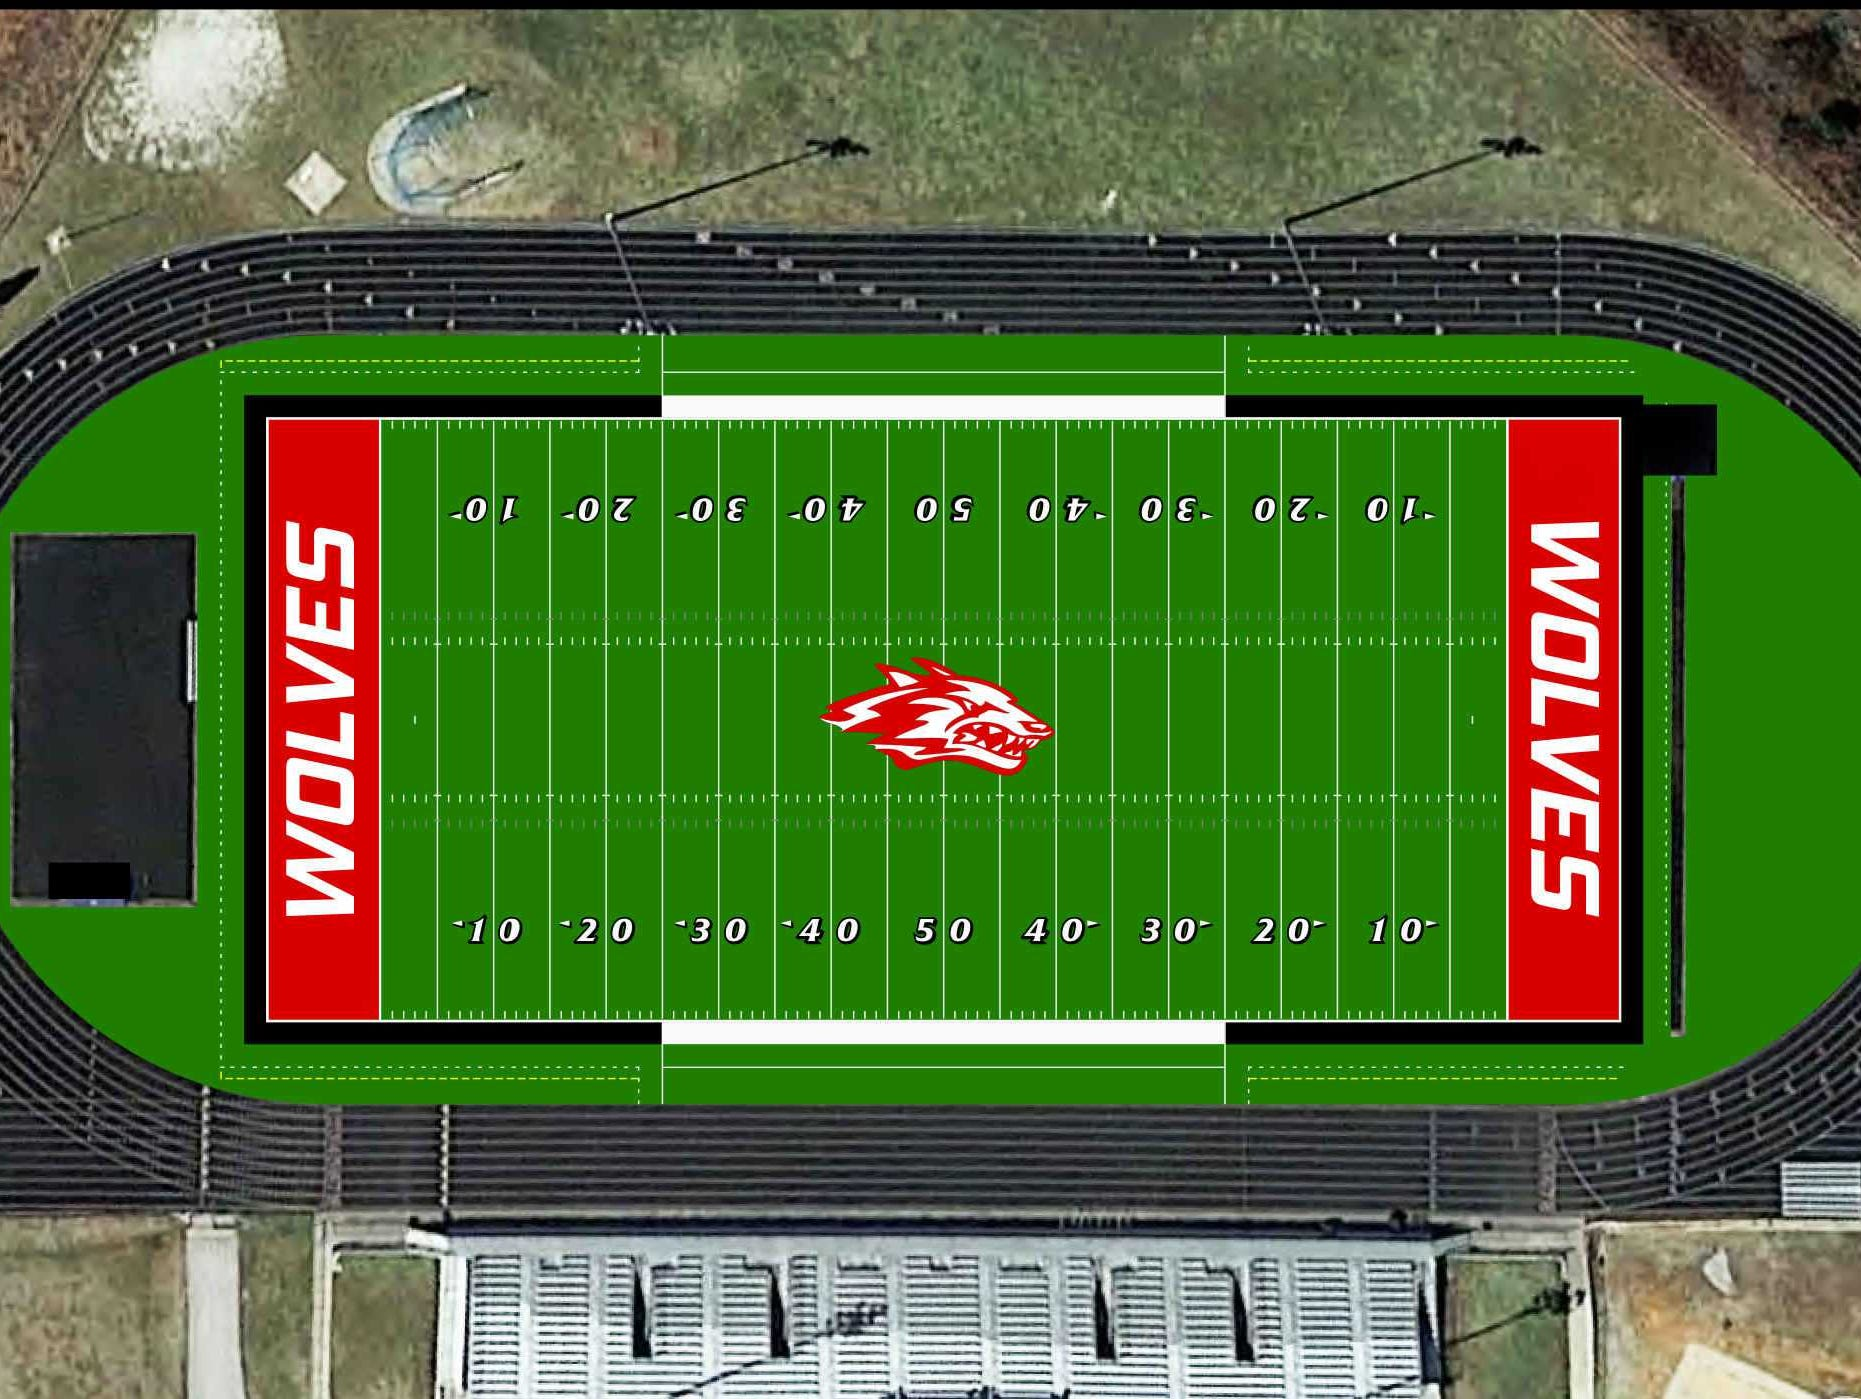 An artist's rendering of what the new Carl Langley Field at Wolves Stadium will look like from the air if artificial turf is installed.